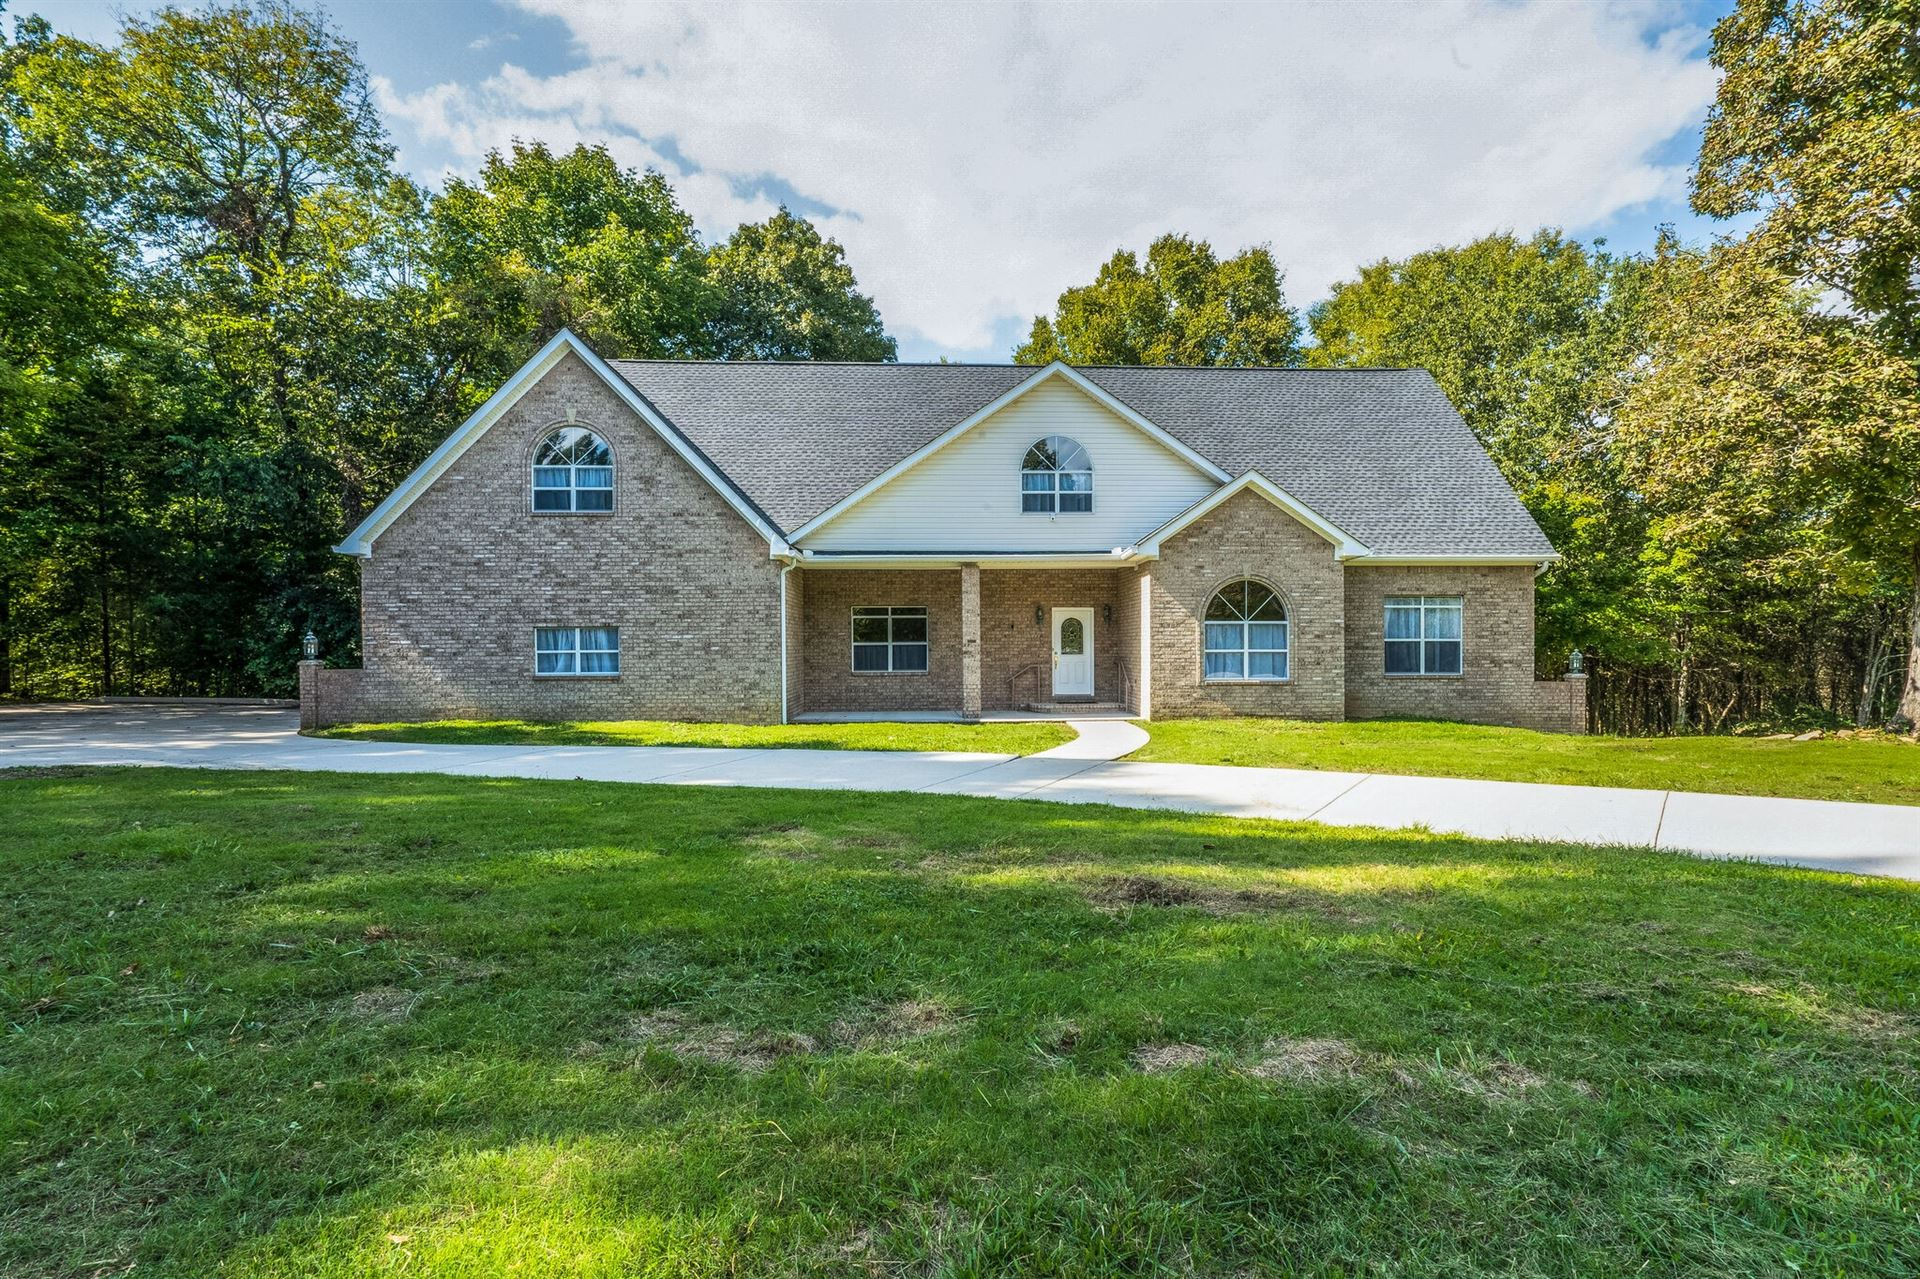 Photo of 945 Hickory Hills Dr, Franklin, TN 37067 (MLS # 2301603)